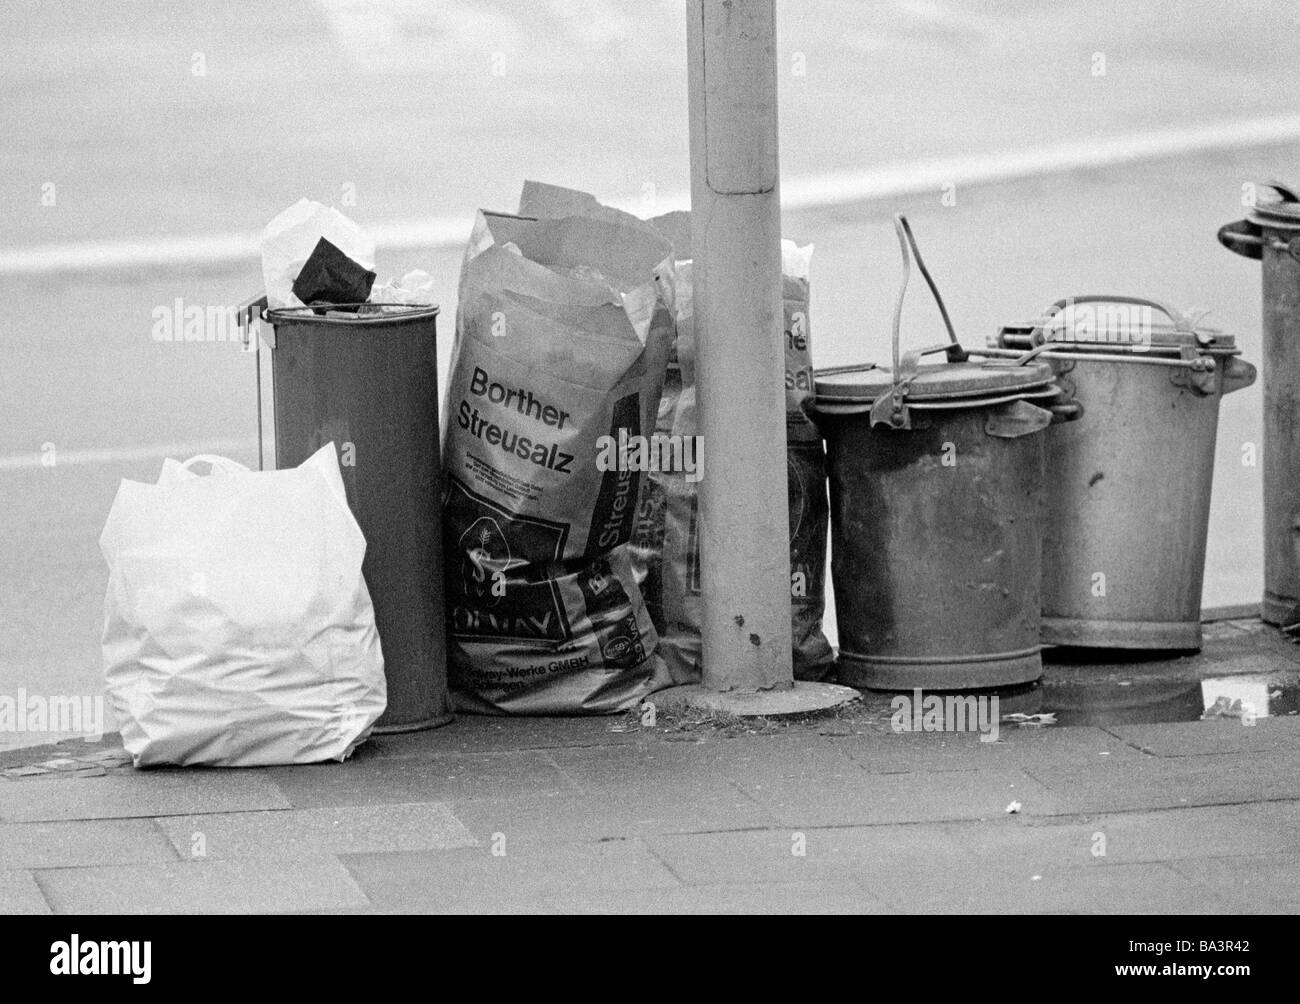 Eighties, black and white photo, dustbins and thrash bags on the roadside - Stock Image